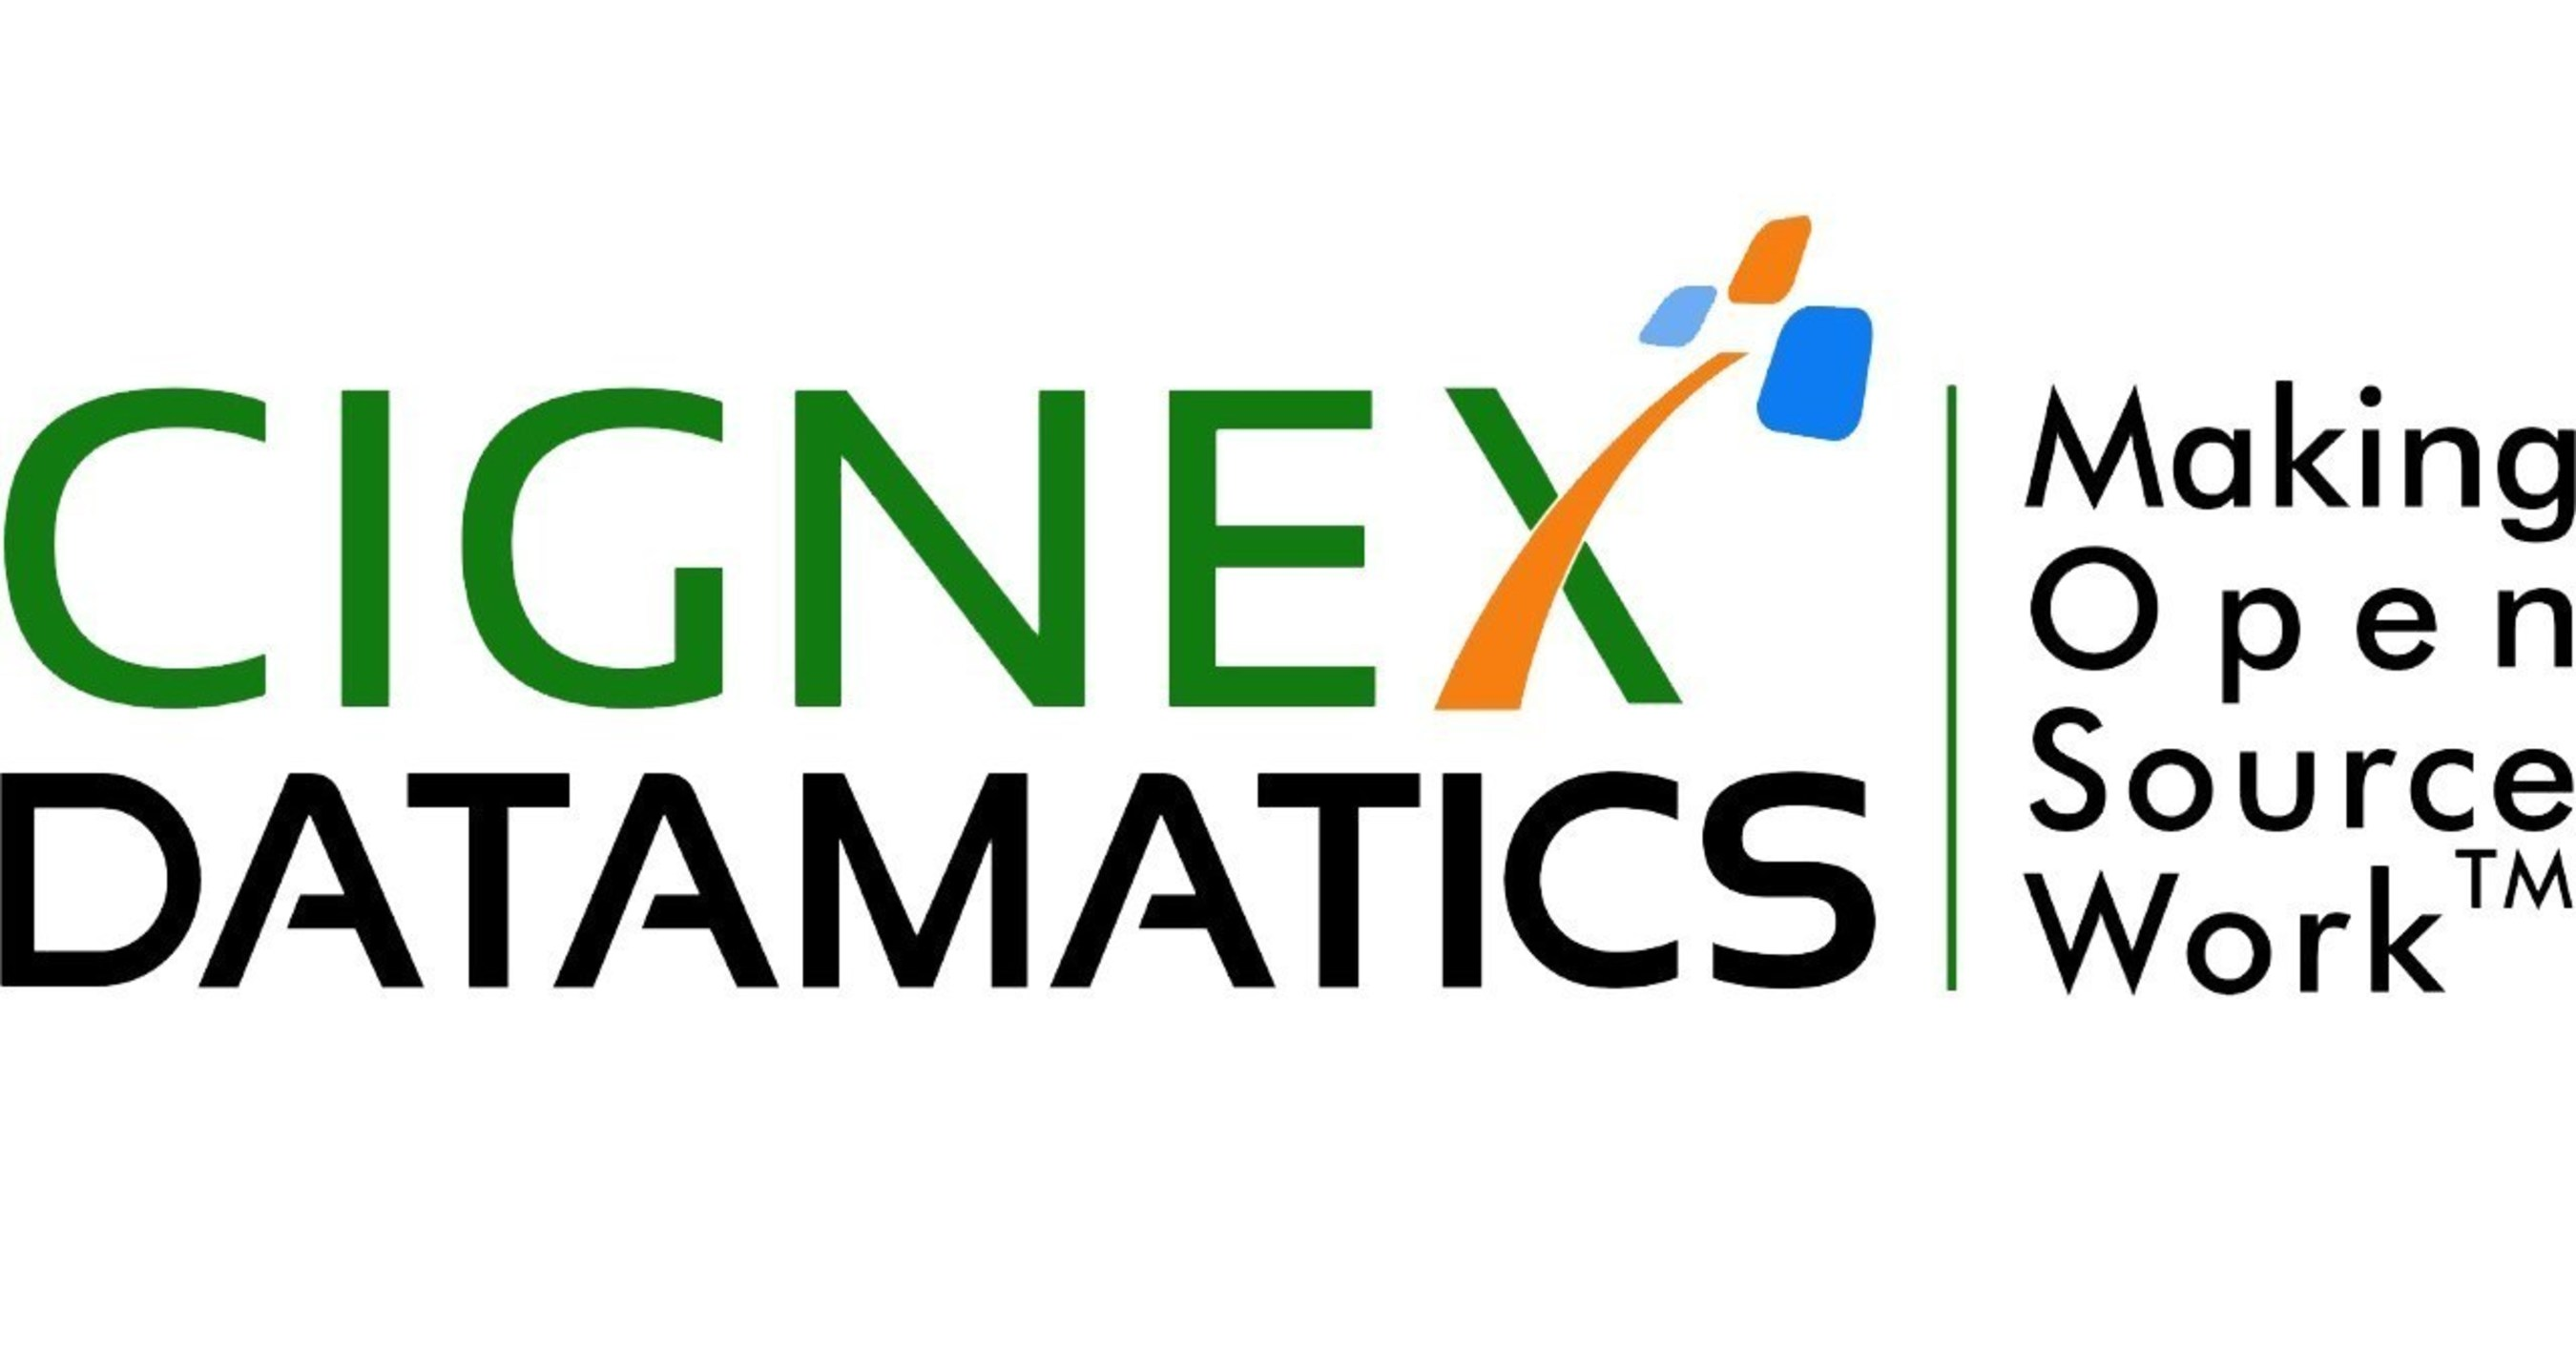 CIGNEX Datamatics and Nuxeo Present Webinar on Convergence of IoT & ECM for Building the Connected